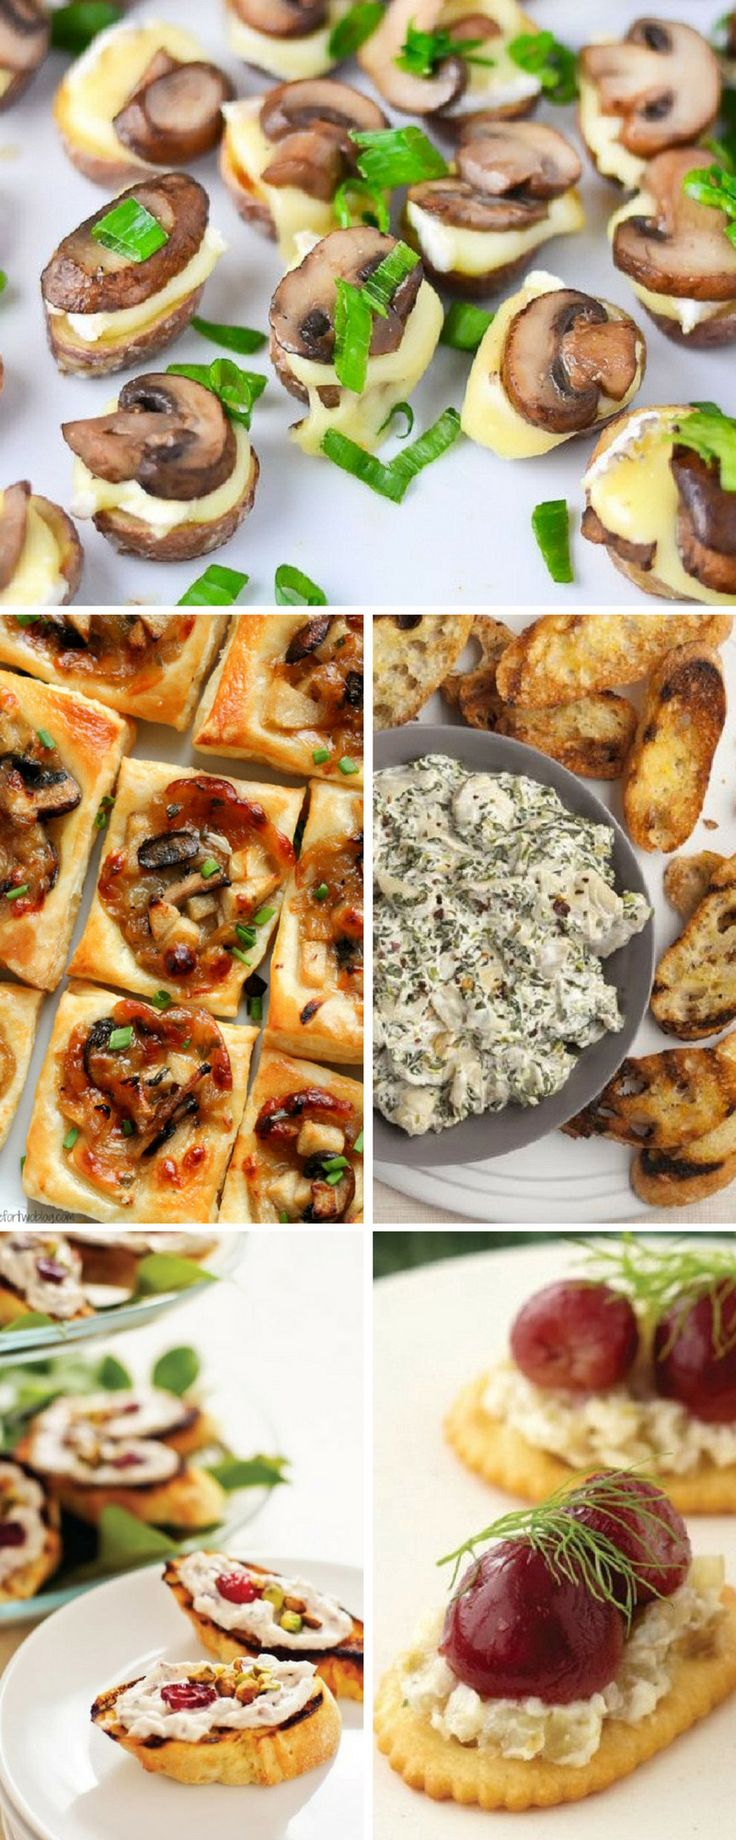 Here you have almost everything. Our appetizers are elegant and delicious. Pair these light appetizers with a fabulous cocktail to give your Thanksgiving celebration a scrumptious start! Enjoy!